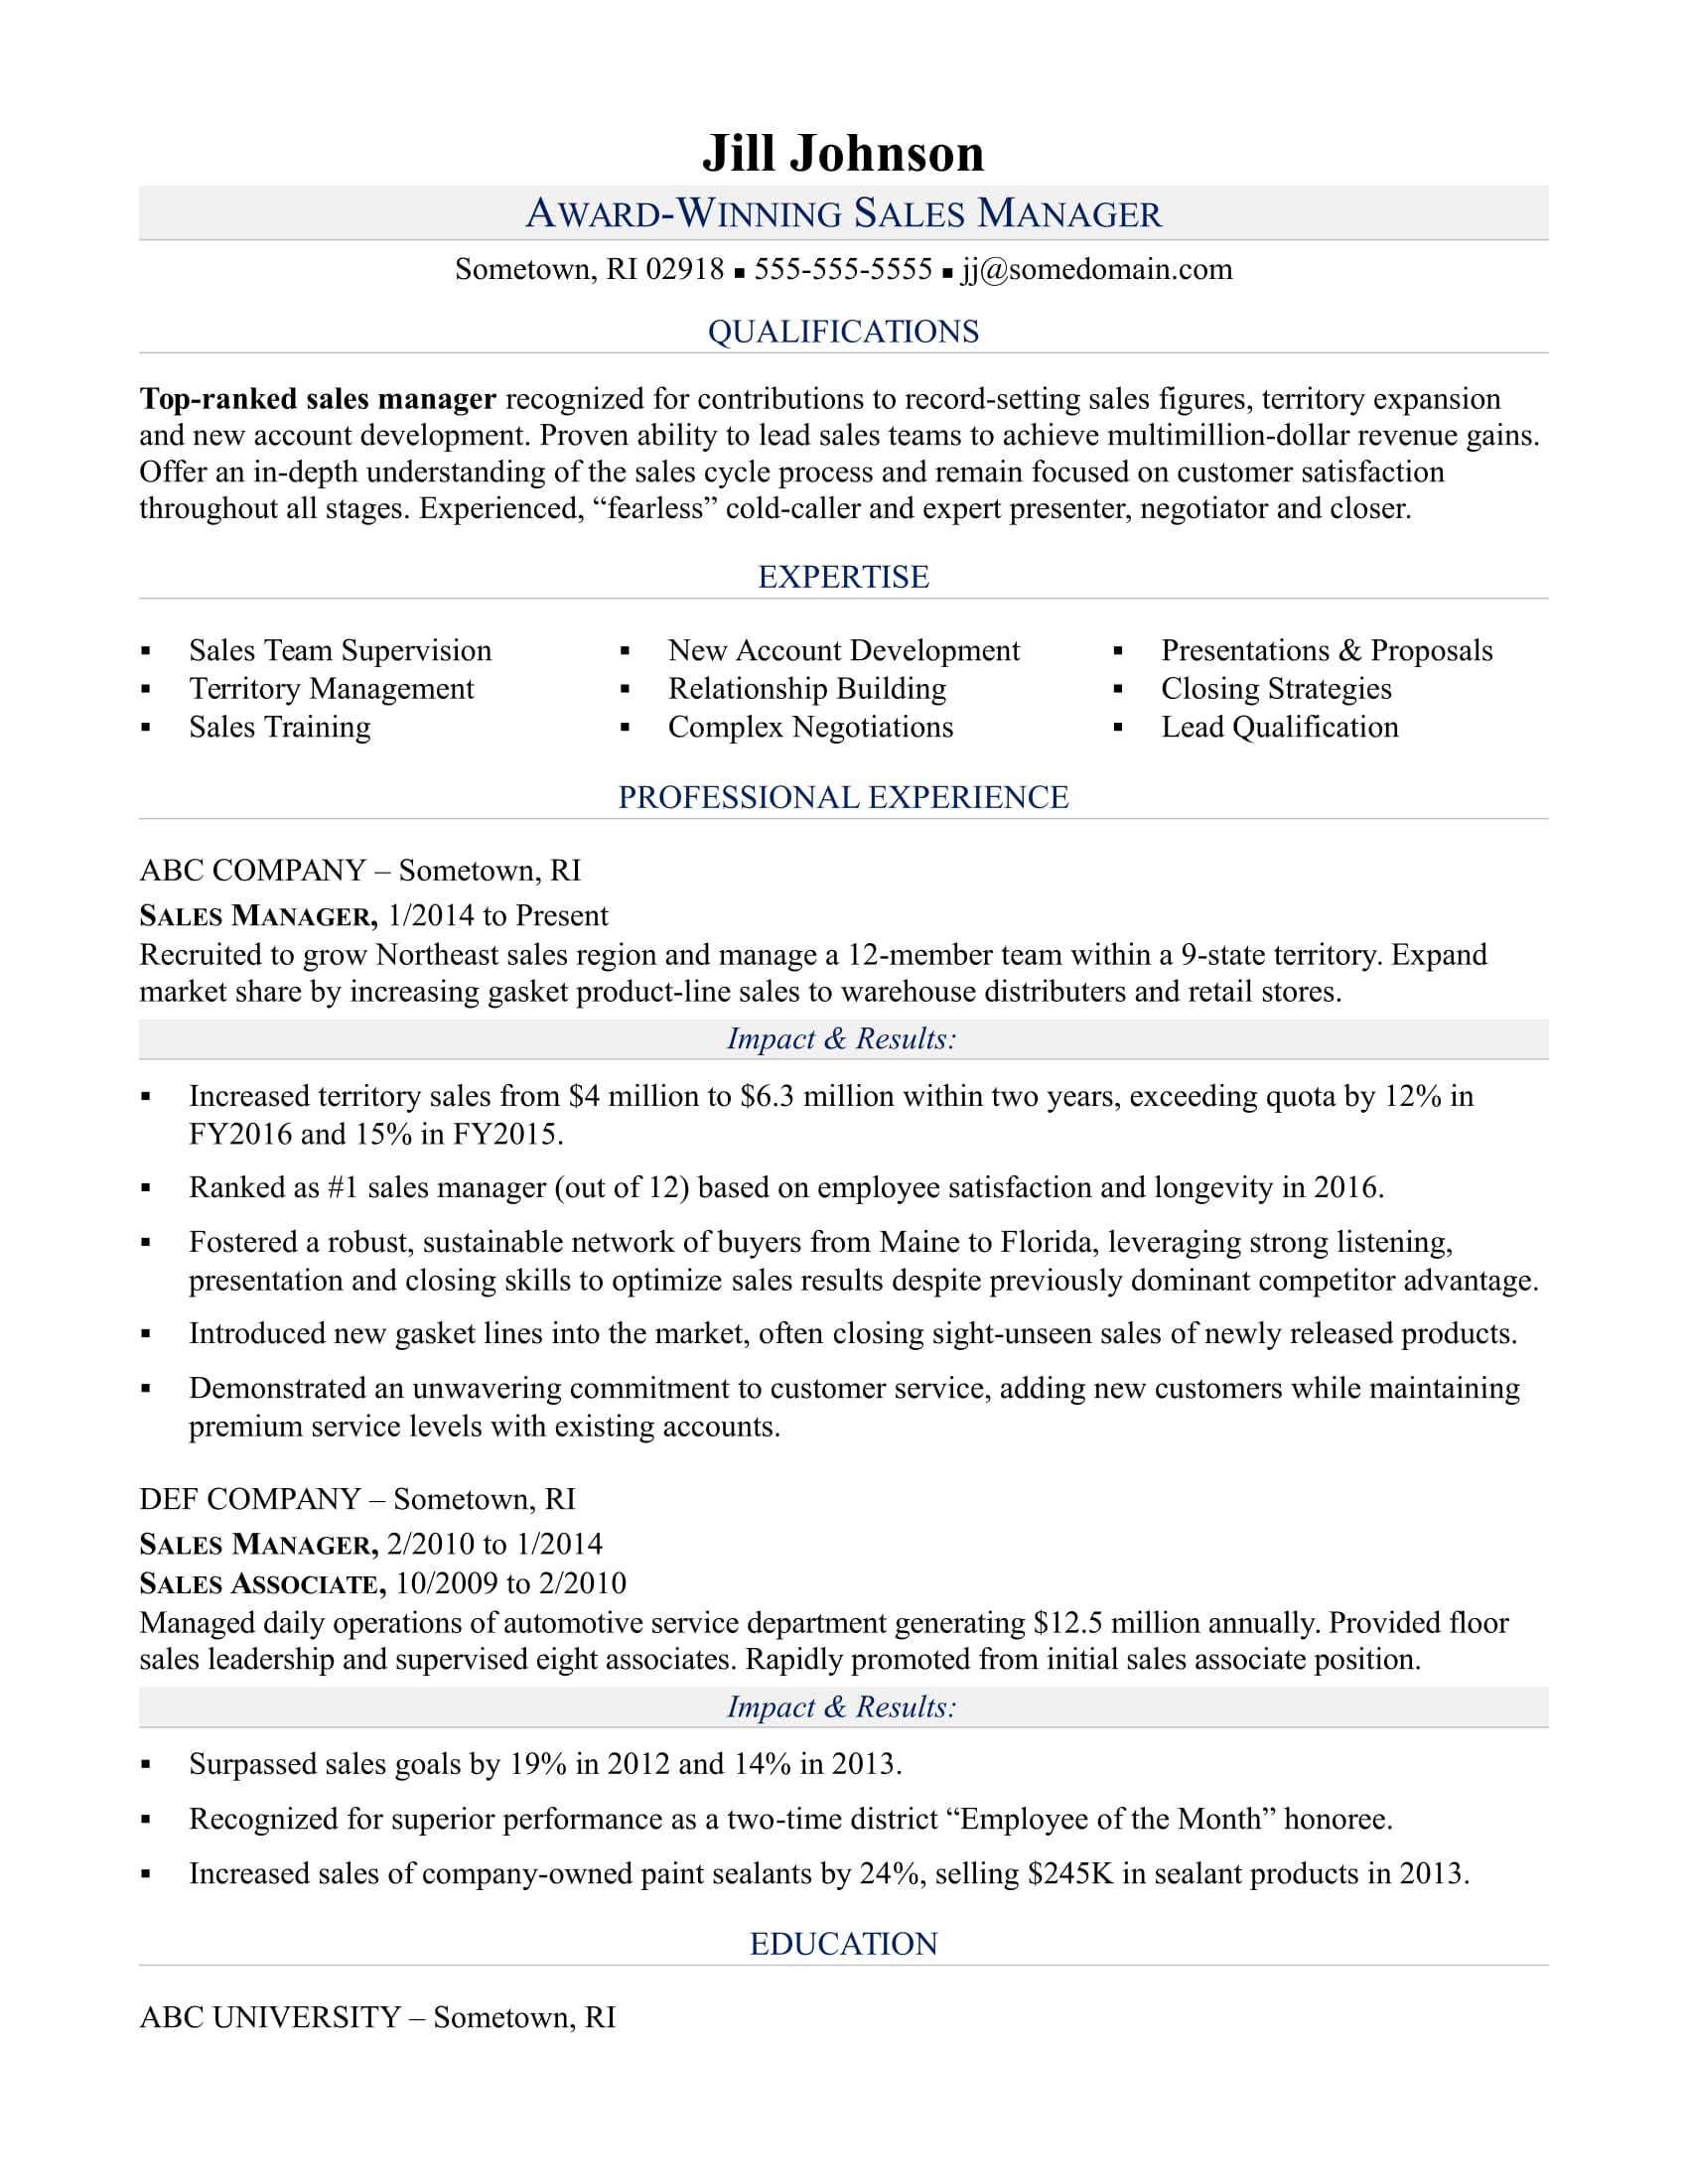 manager resume sample monster training keywords professional fonts for interior design Resume Training Manager Resume Keywords